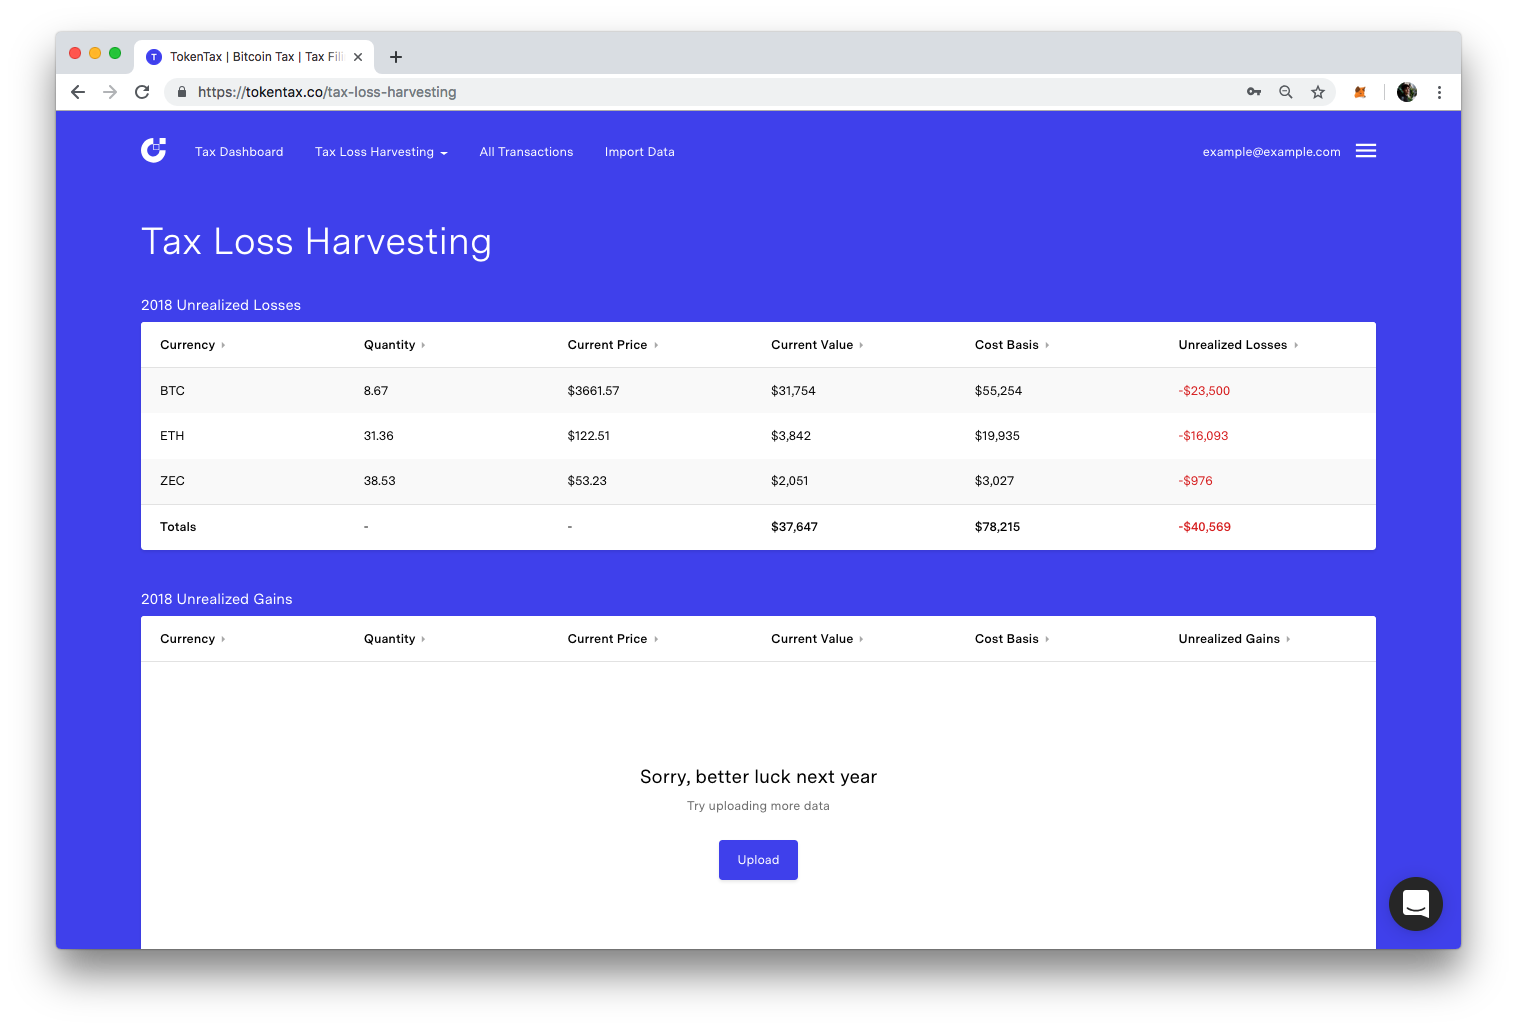 The TokenTax tax loss harvesting dashboard